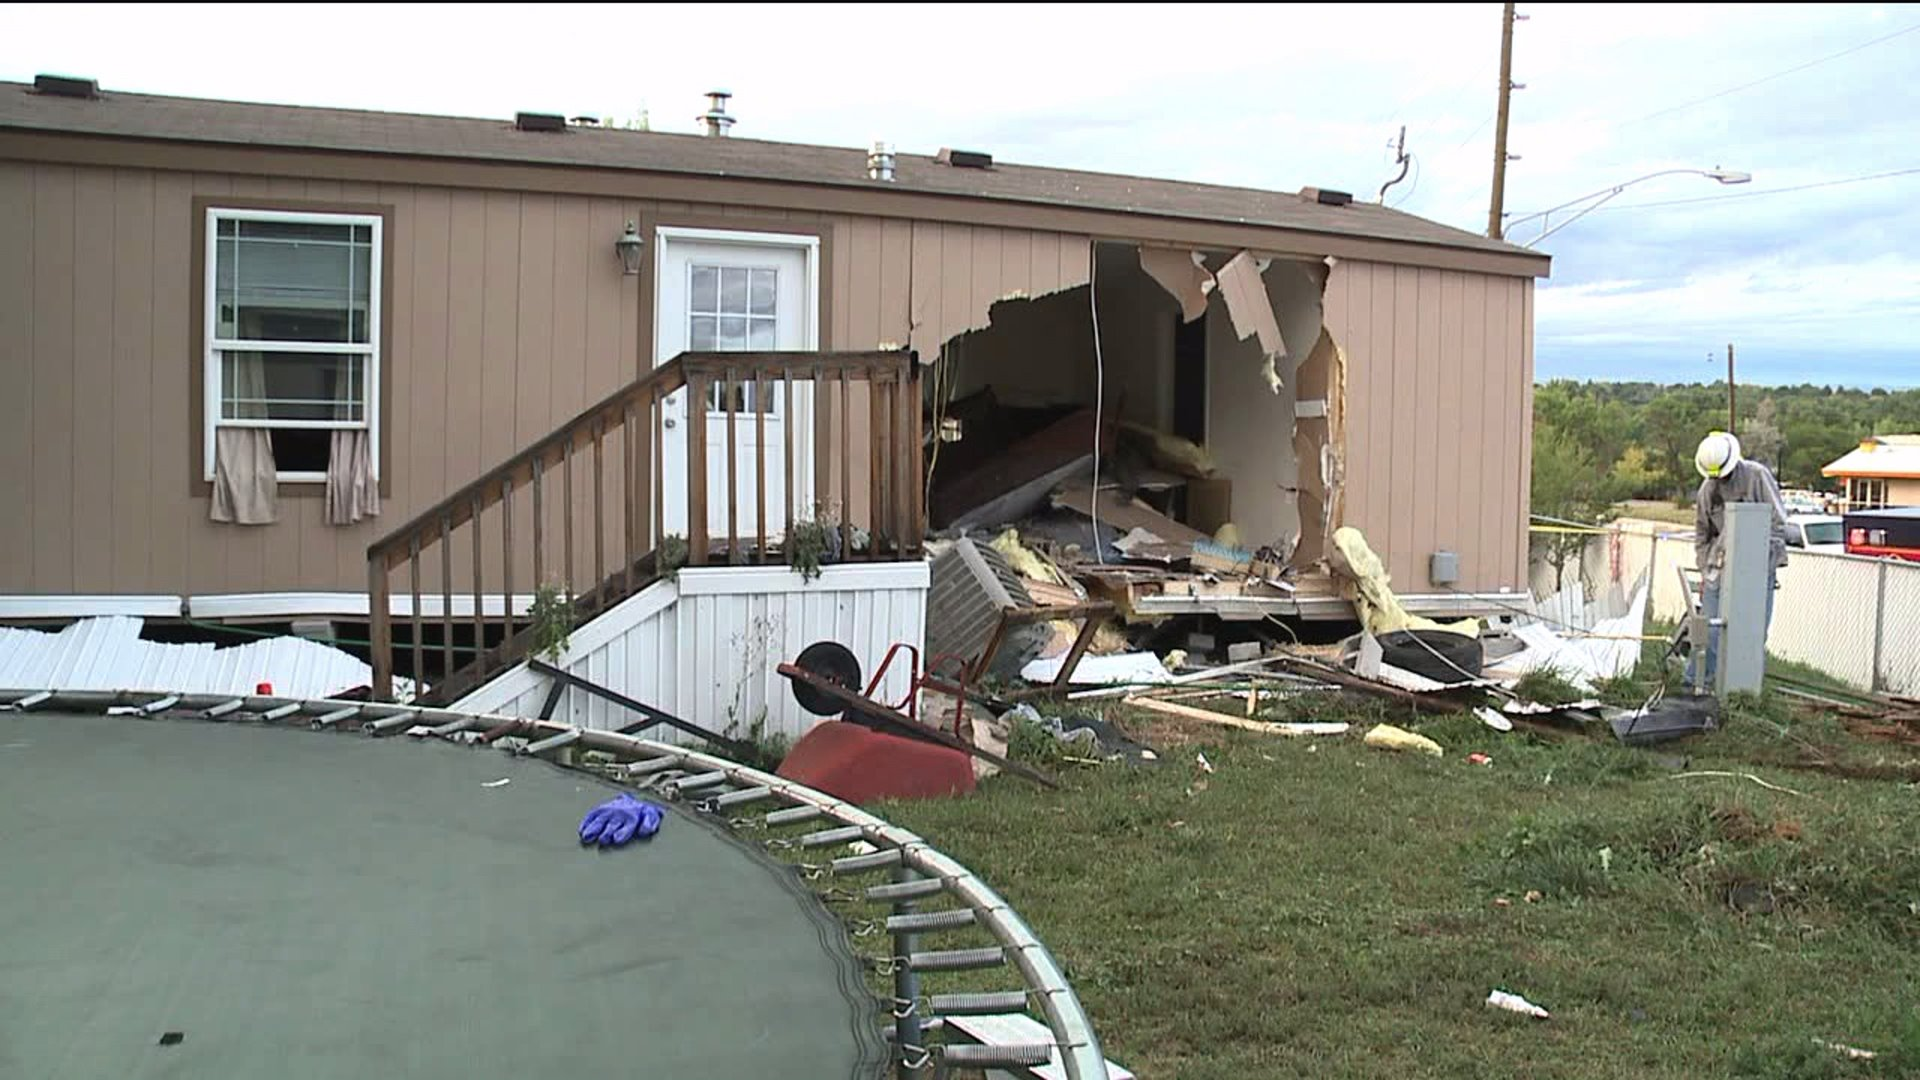 Home severely damaged when SUV crashes into it in Federal Heights, Colo.